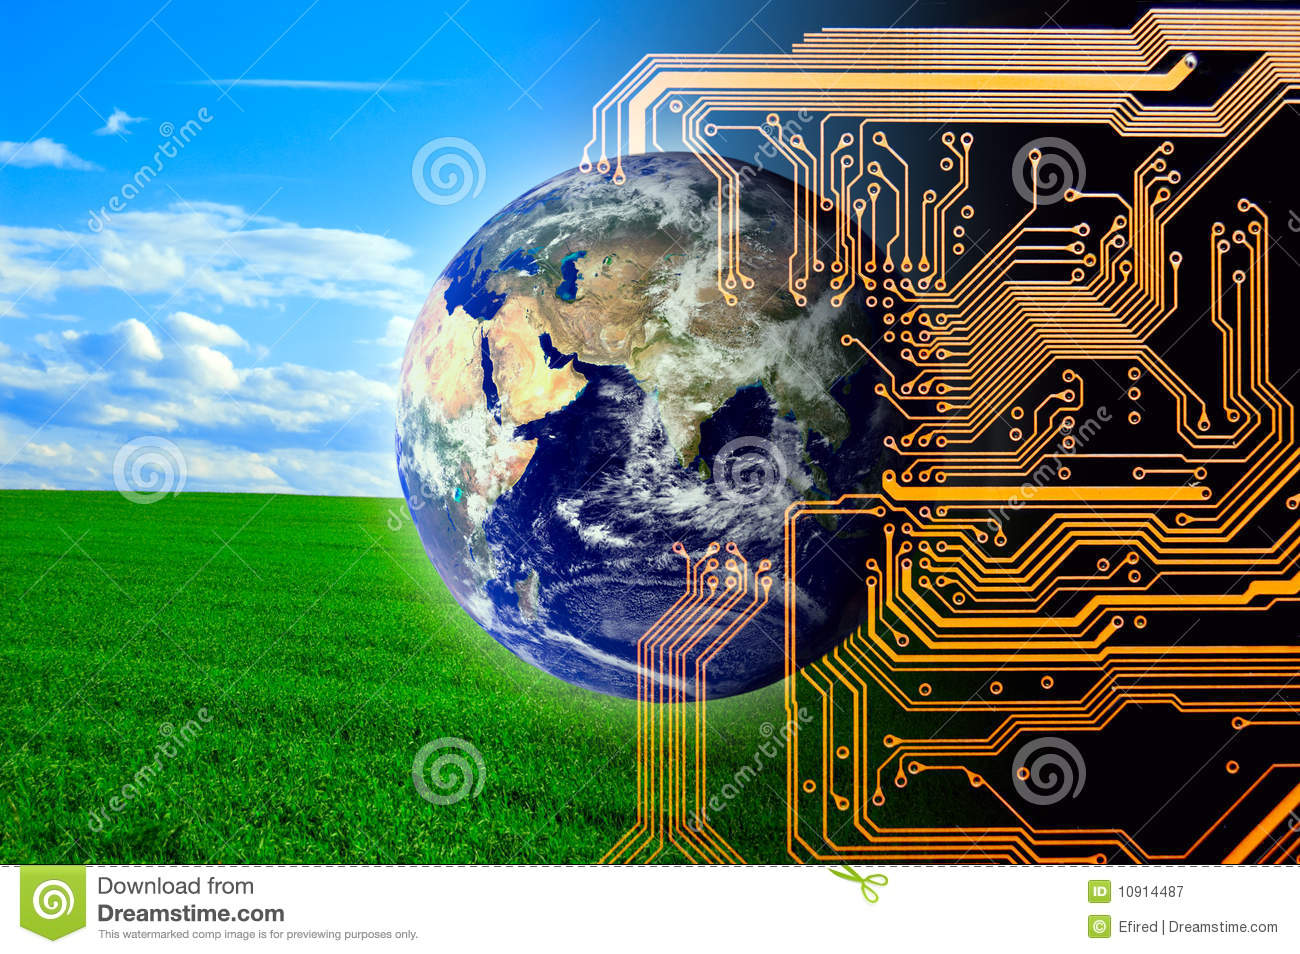 Nature And Technology Royalty Free Stock Photography  Image 10914487